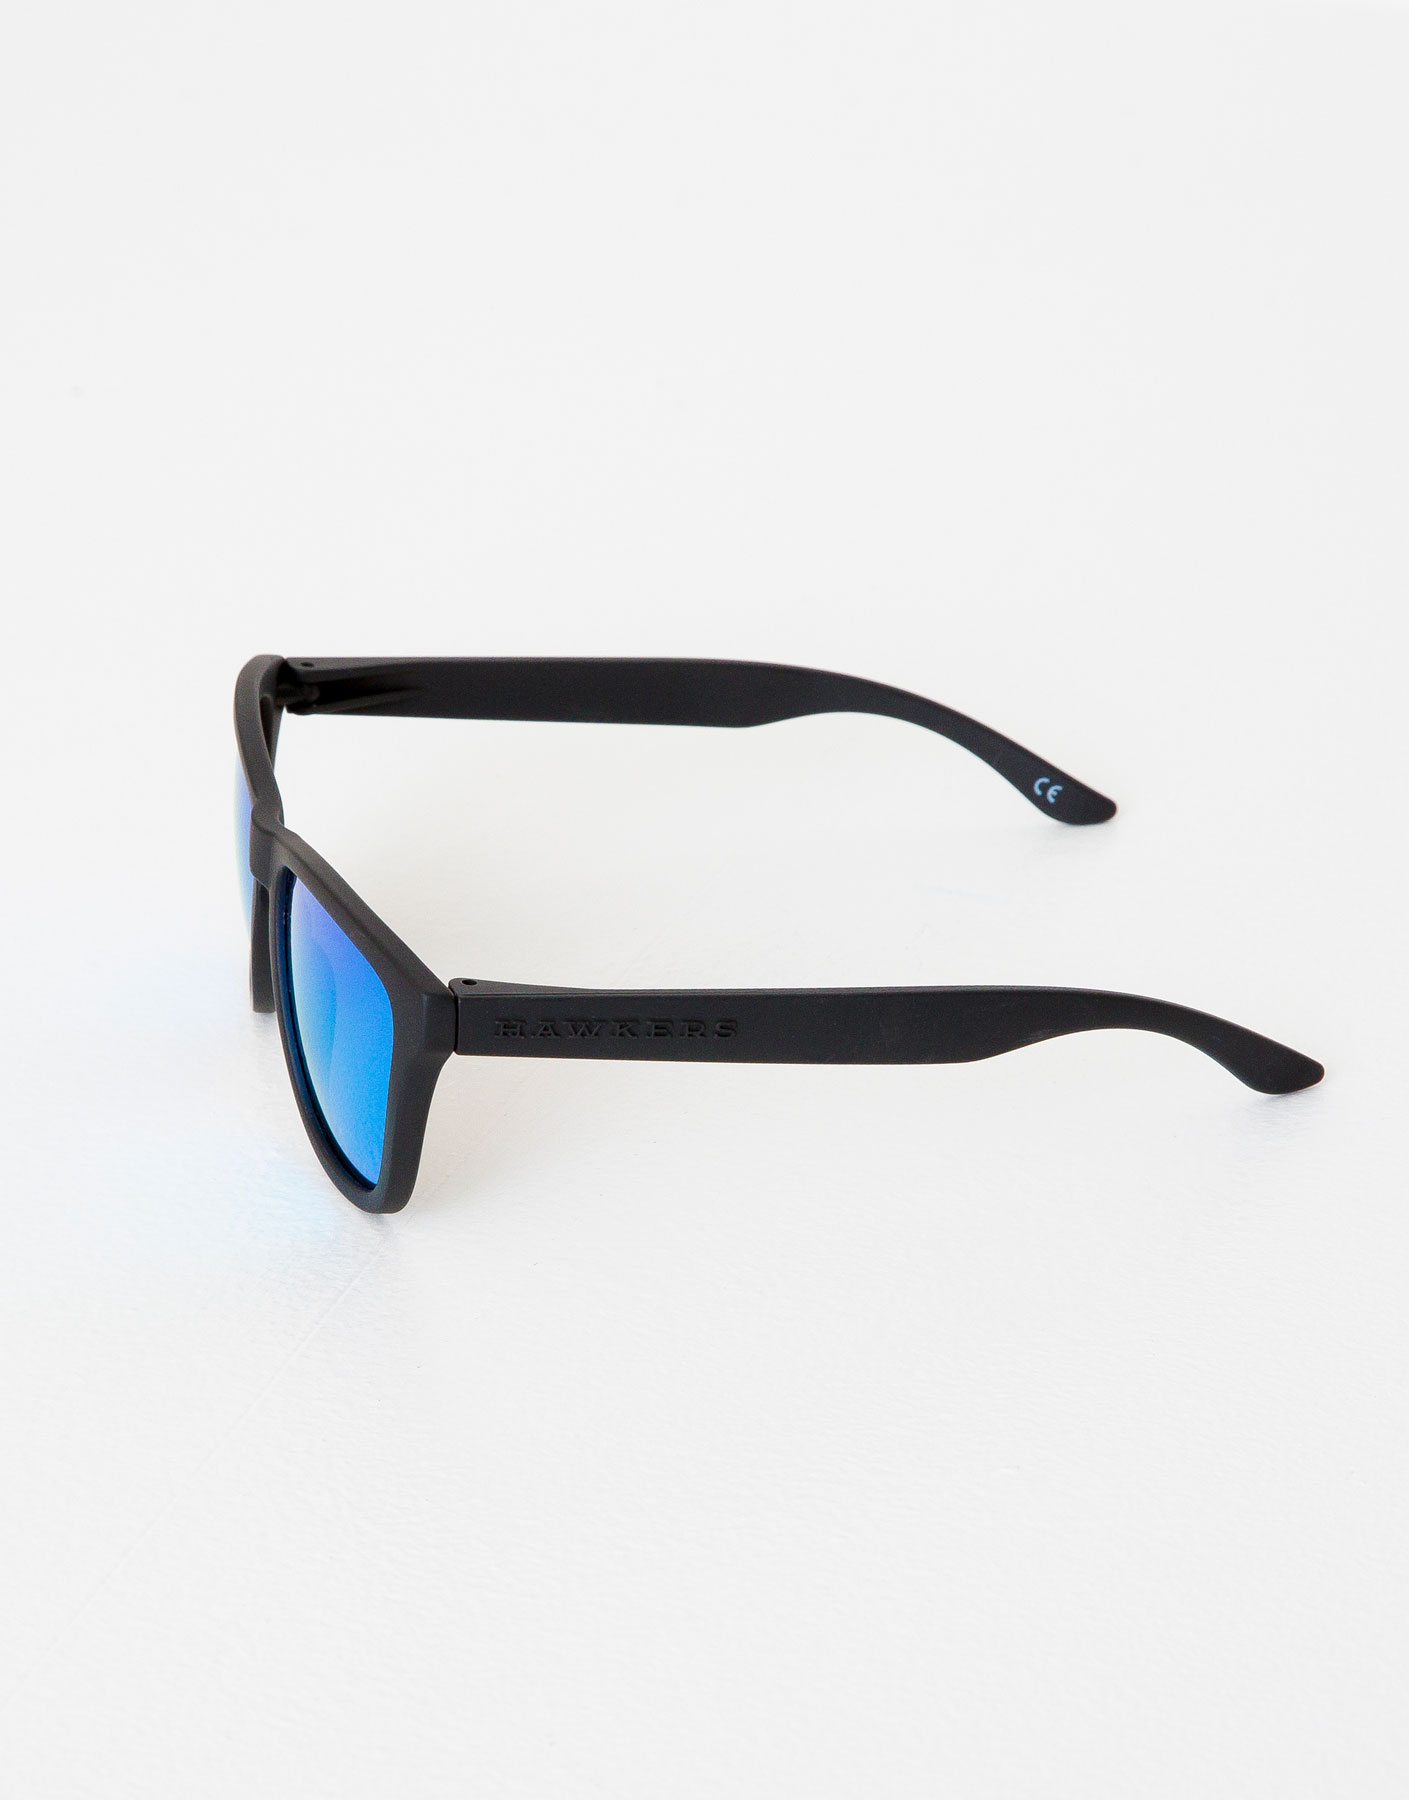 Gafas de sol hawkers carbon black clear blue one